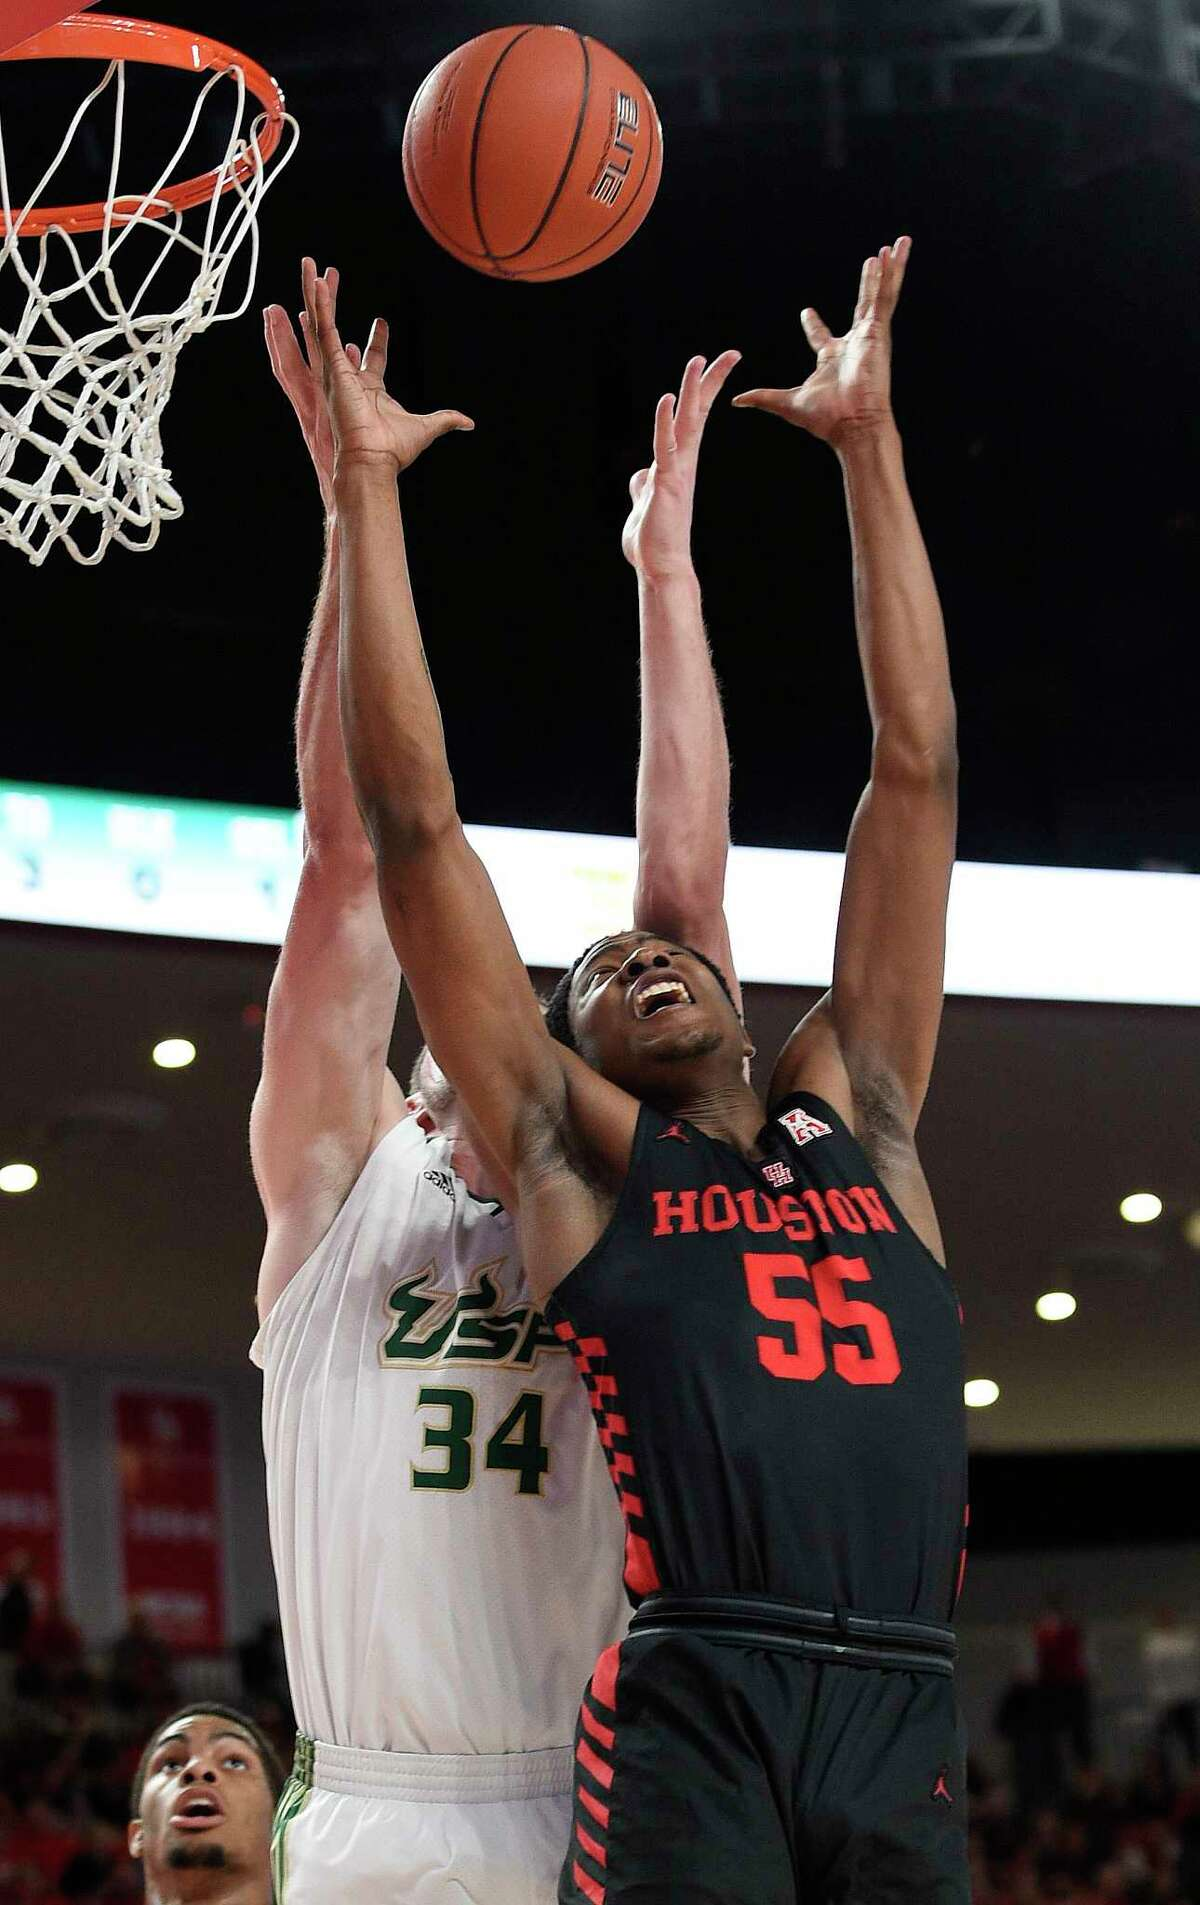 Houston forward Brison Gresham (55) and South Florida forward Antun Maricevic (34) reach for a rebound during the first half of an NCAA college basketball game, Saturday, Feb. 23, 2019, in Houston.